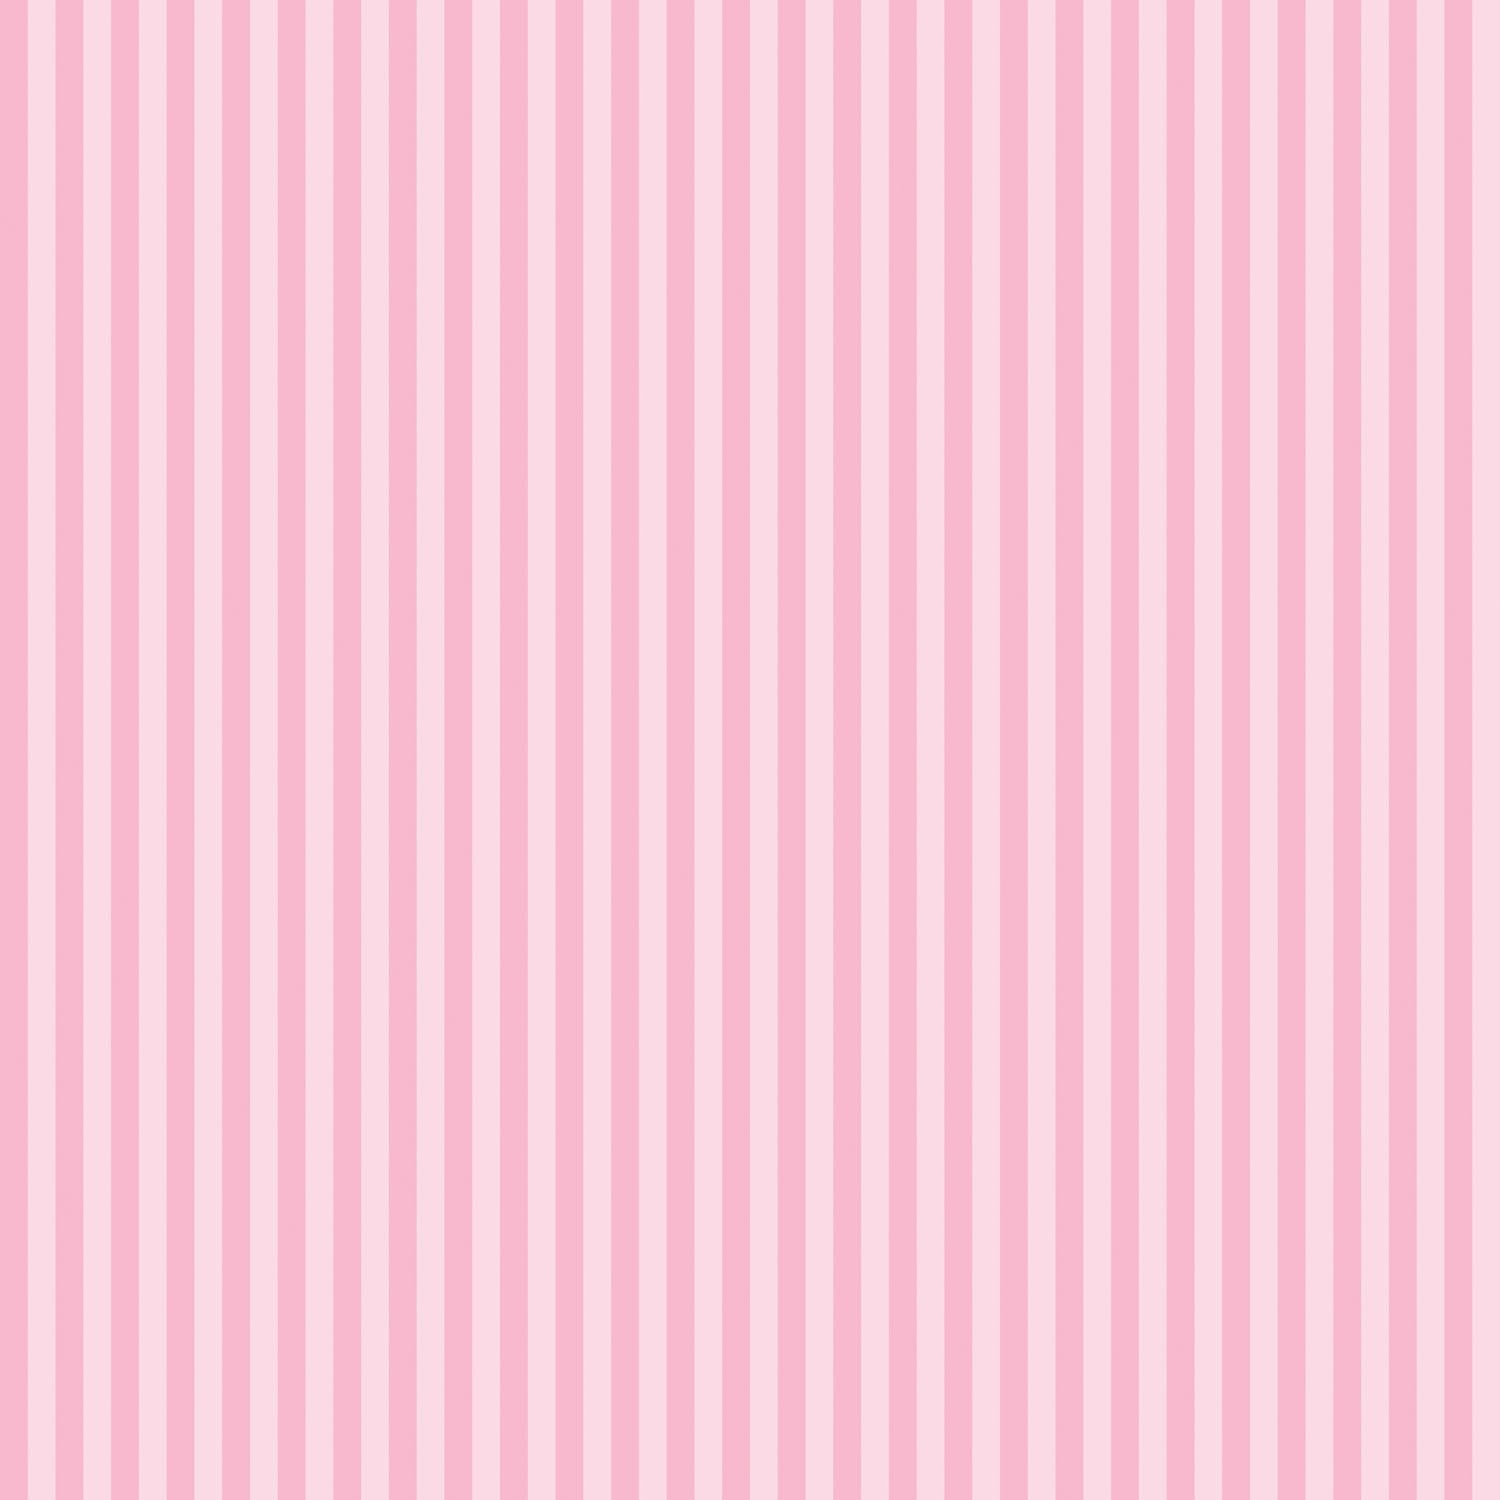 Pink striped wallpaper hd - Pink Stripe Wallpaper